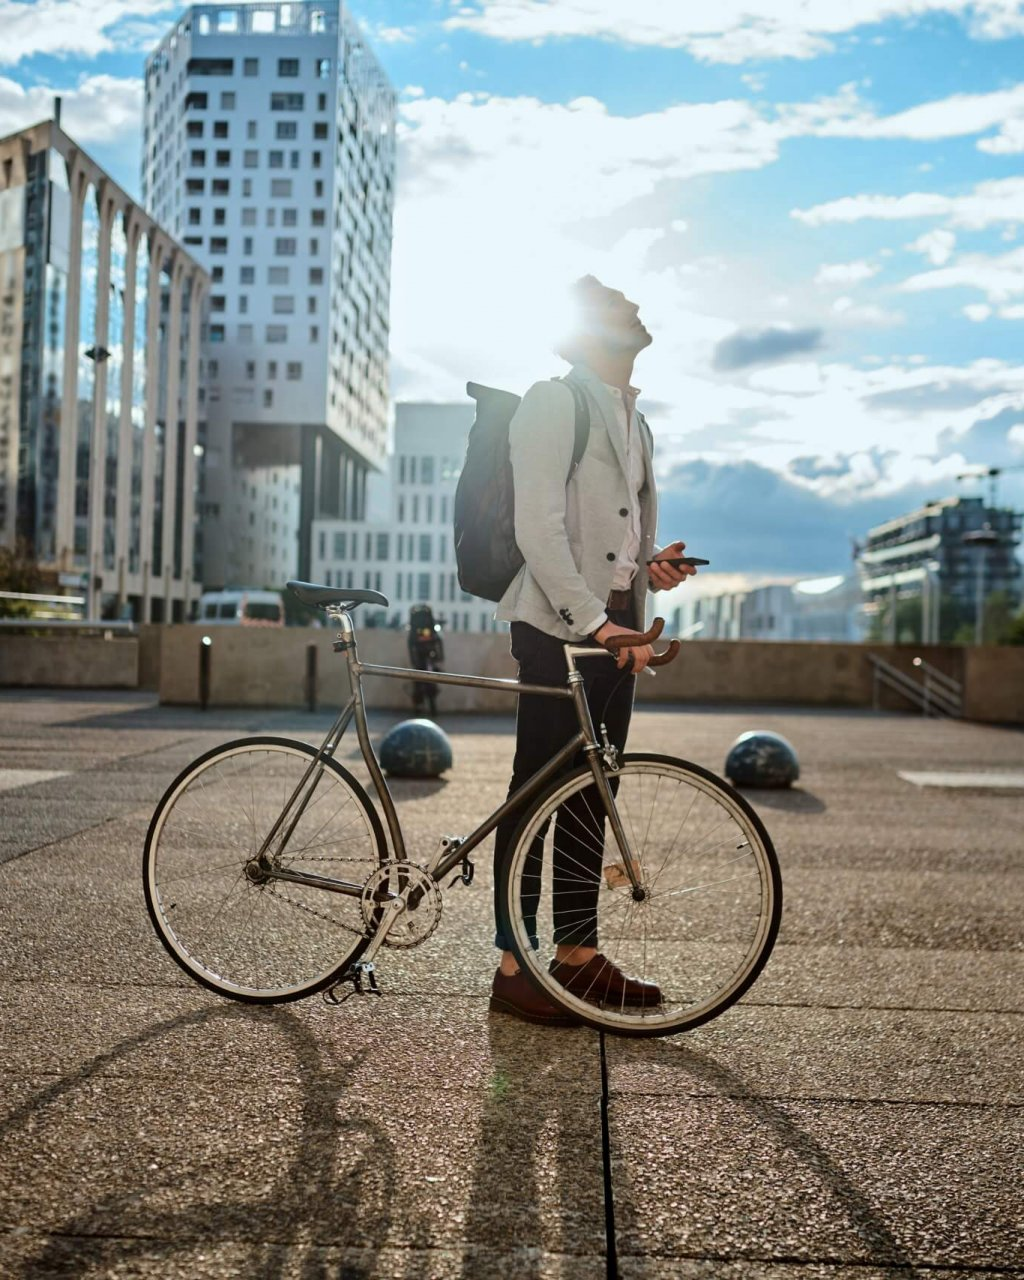 Shot of a young businessman using a smartphone while traveling through the city with his bicycle